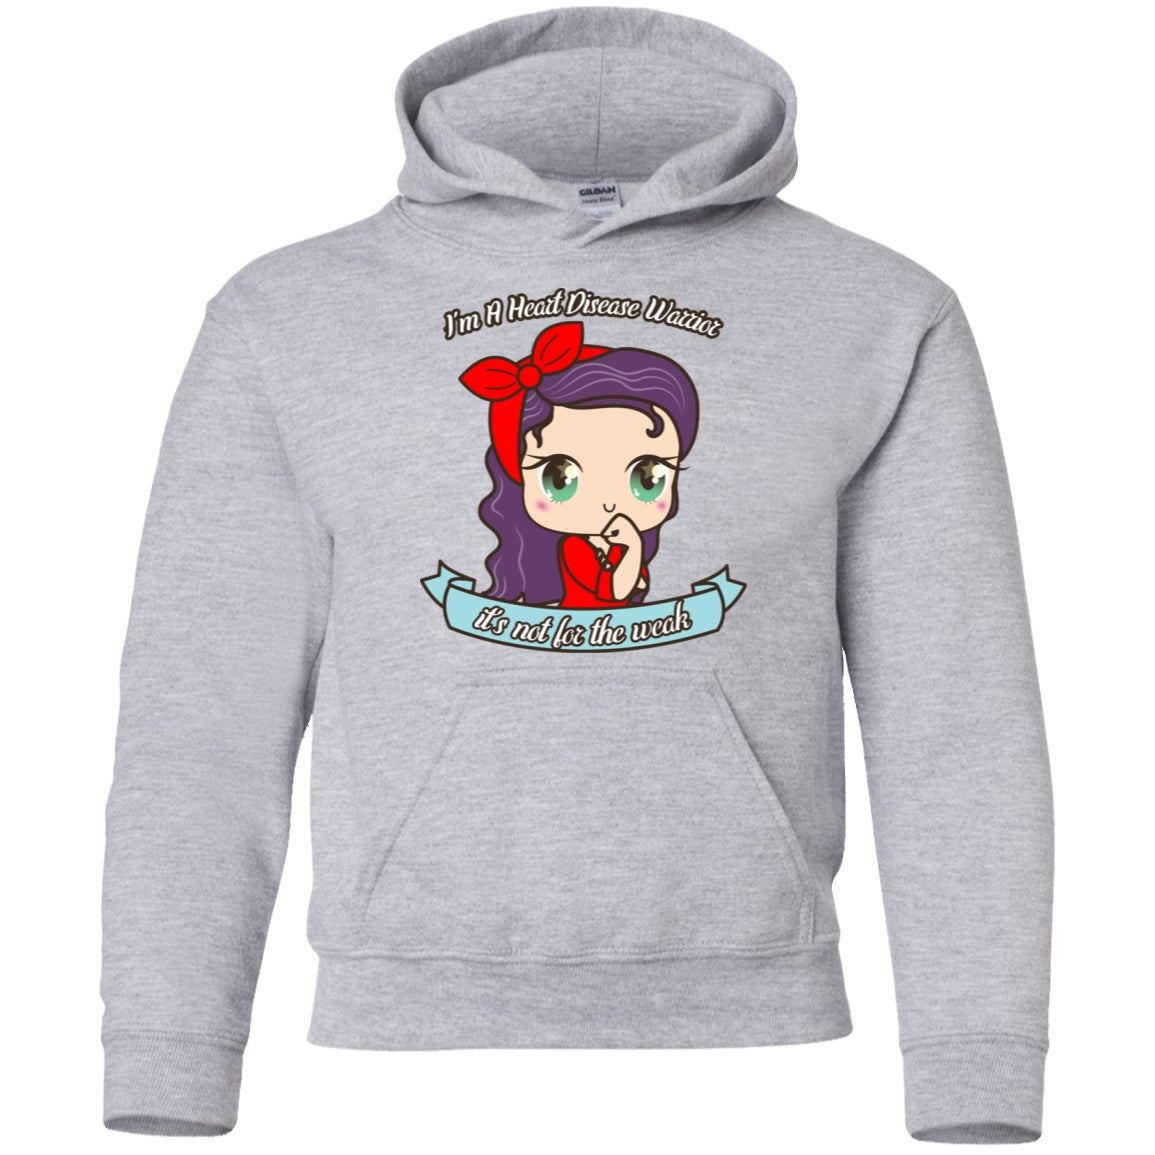 Cute Heart Disease Warrior Youth Pullover Hoodie - The Unchargeables